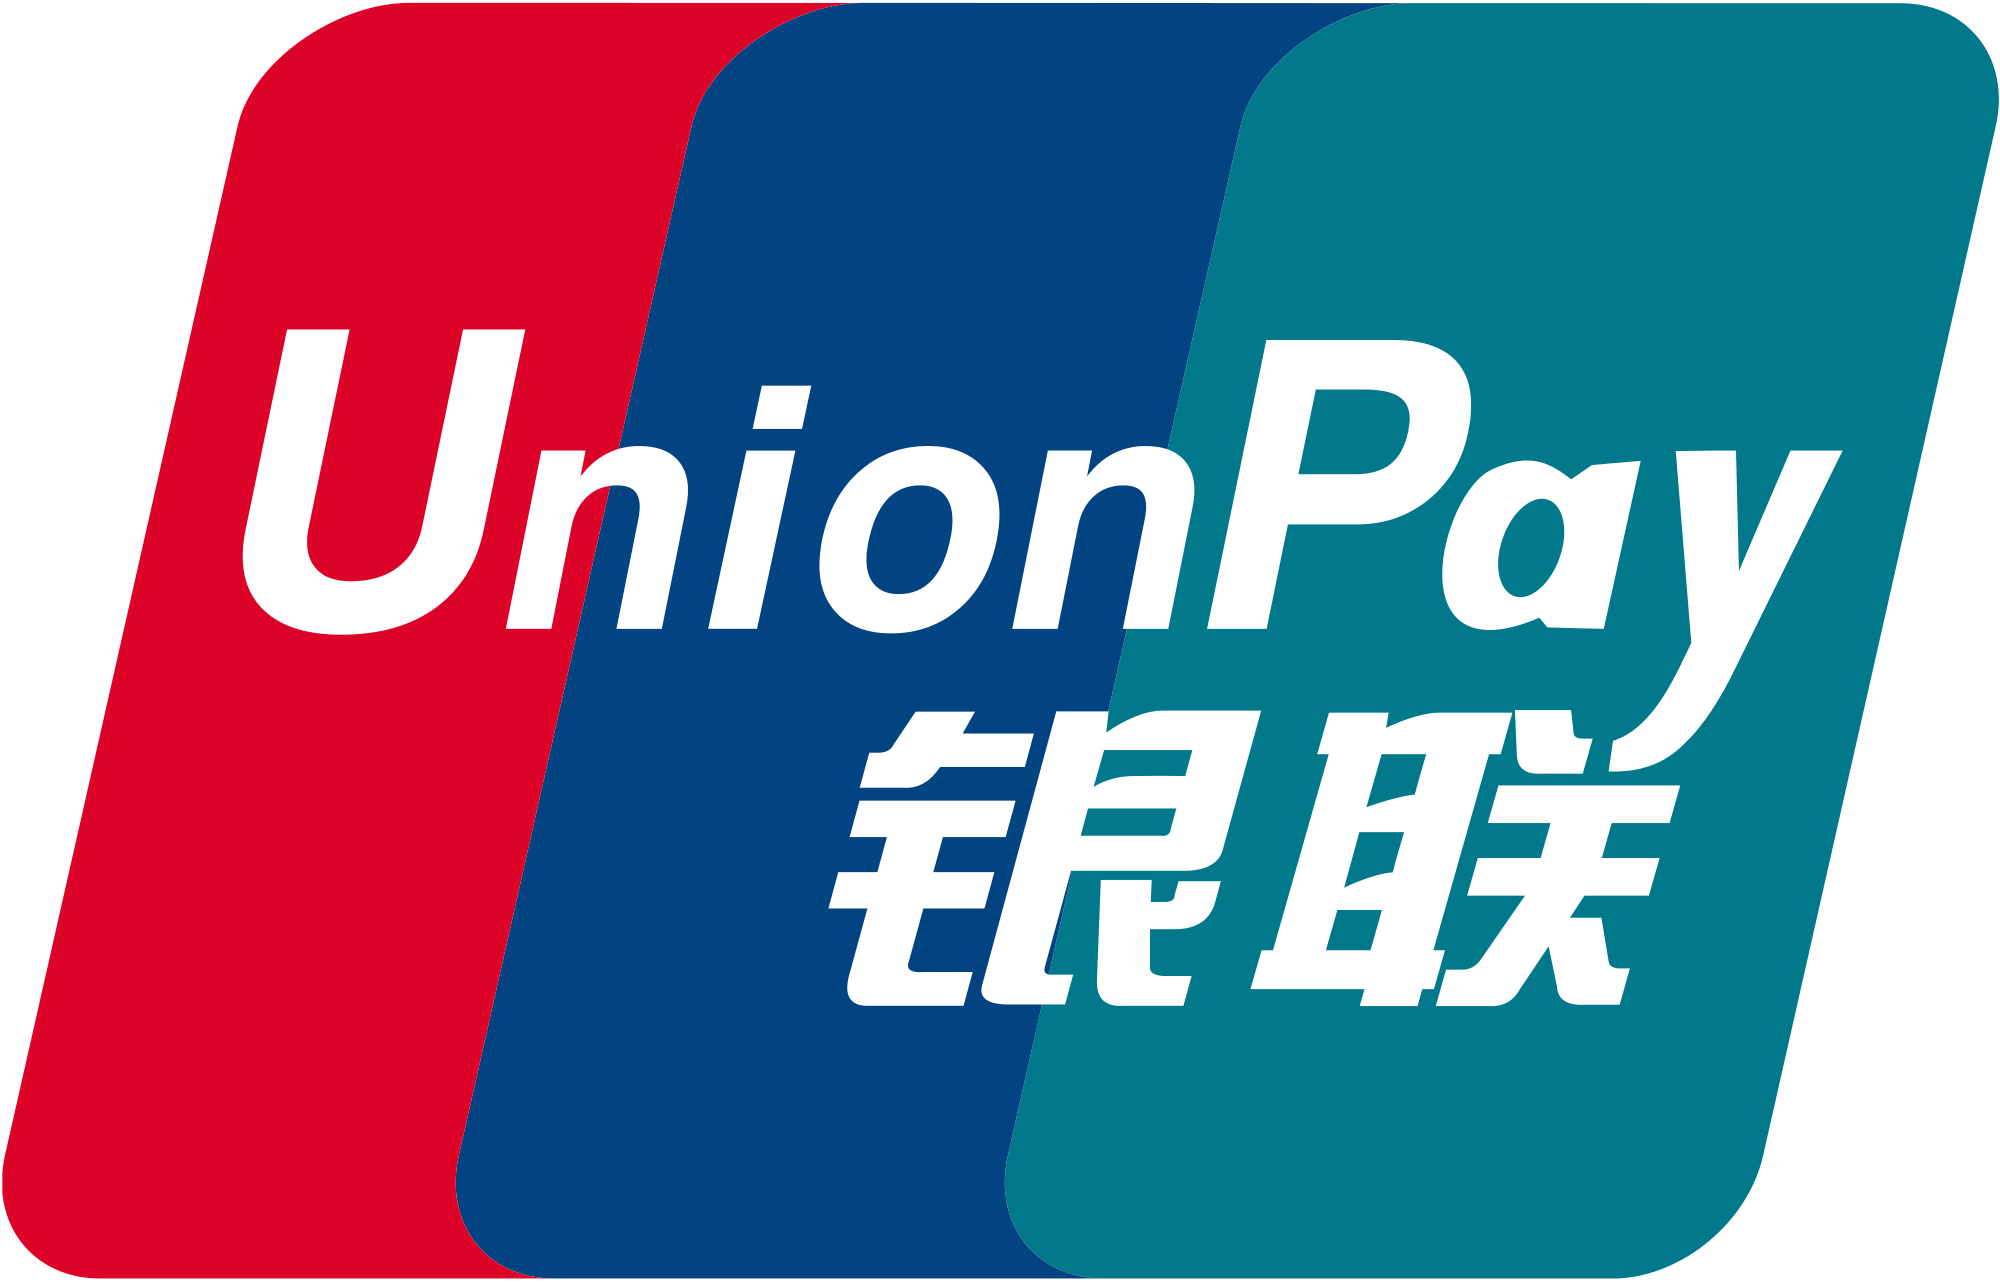 Acceptance Marks Union Pay